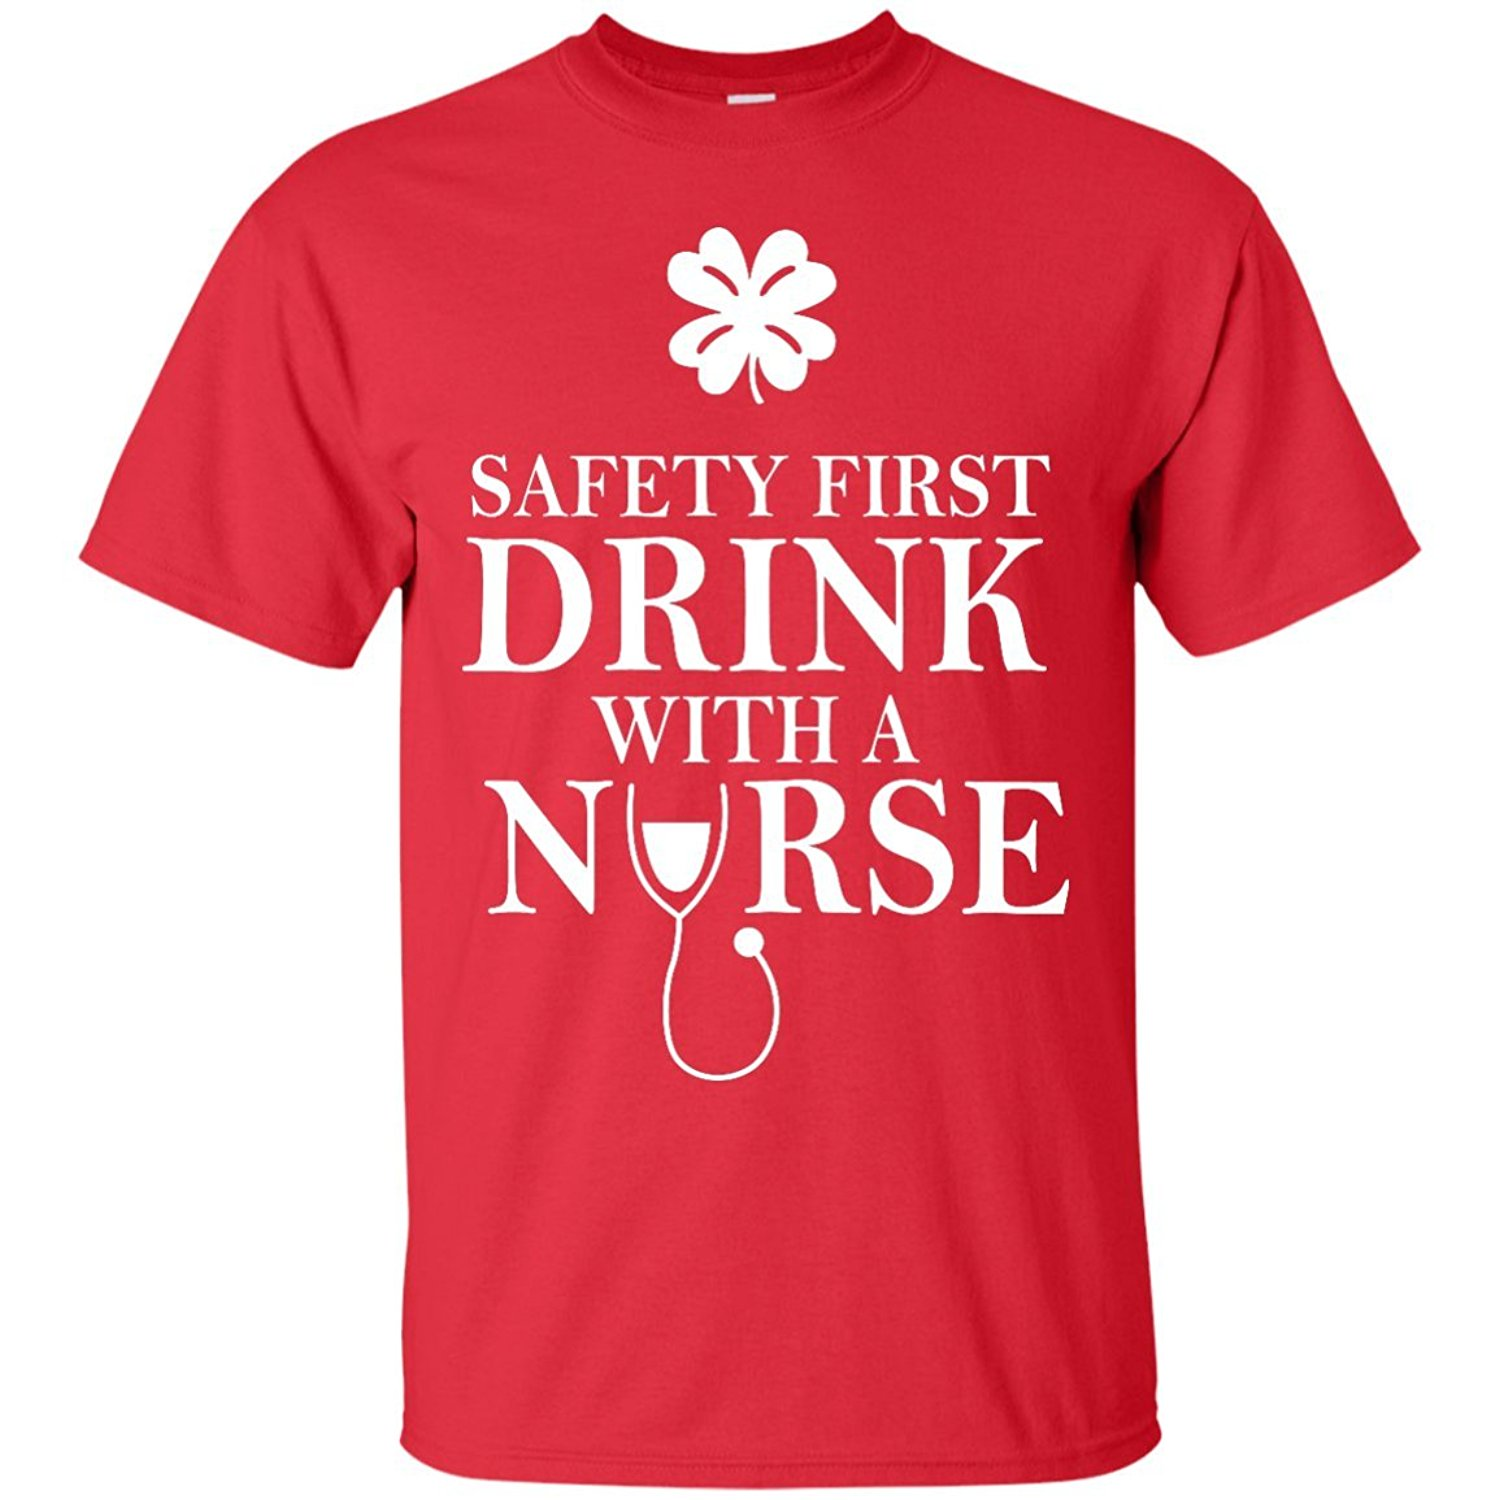 2019 New Fashion Brand Print T-Shirt Male Brand St. Patrick'S Day Safety First, Drink With A Nurse Silk Screen T Shirts